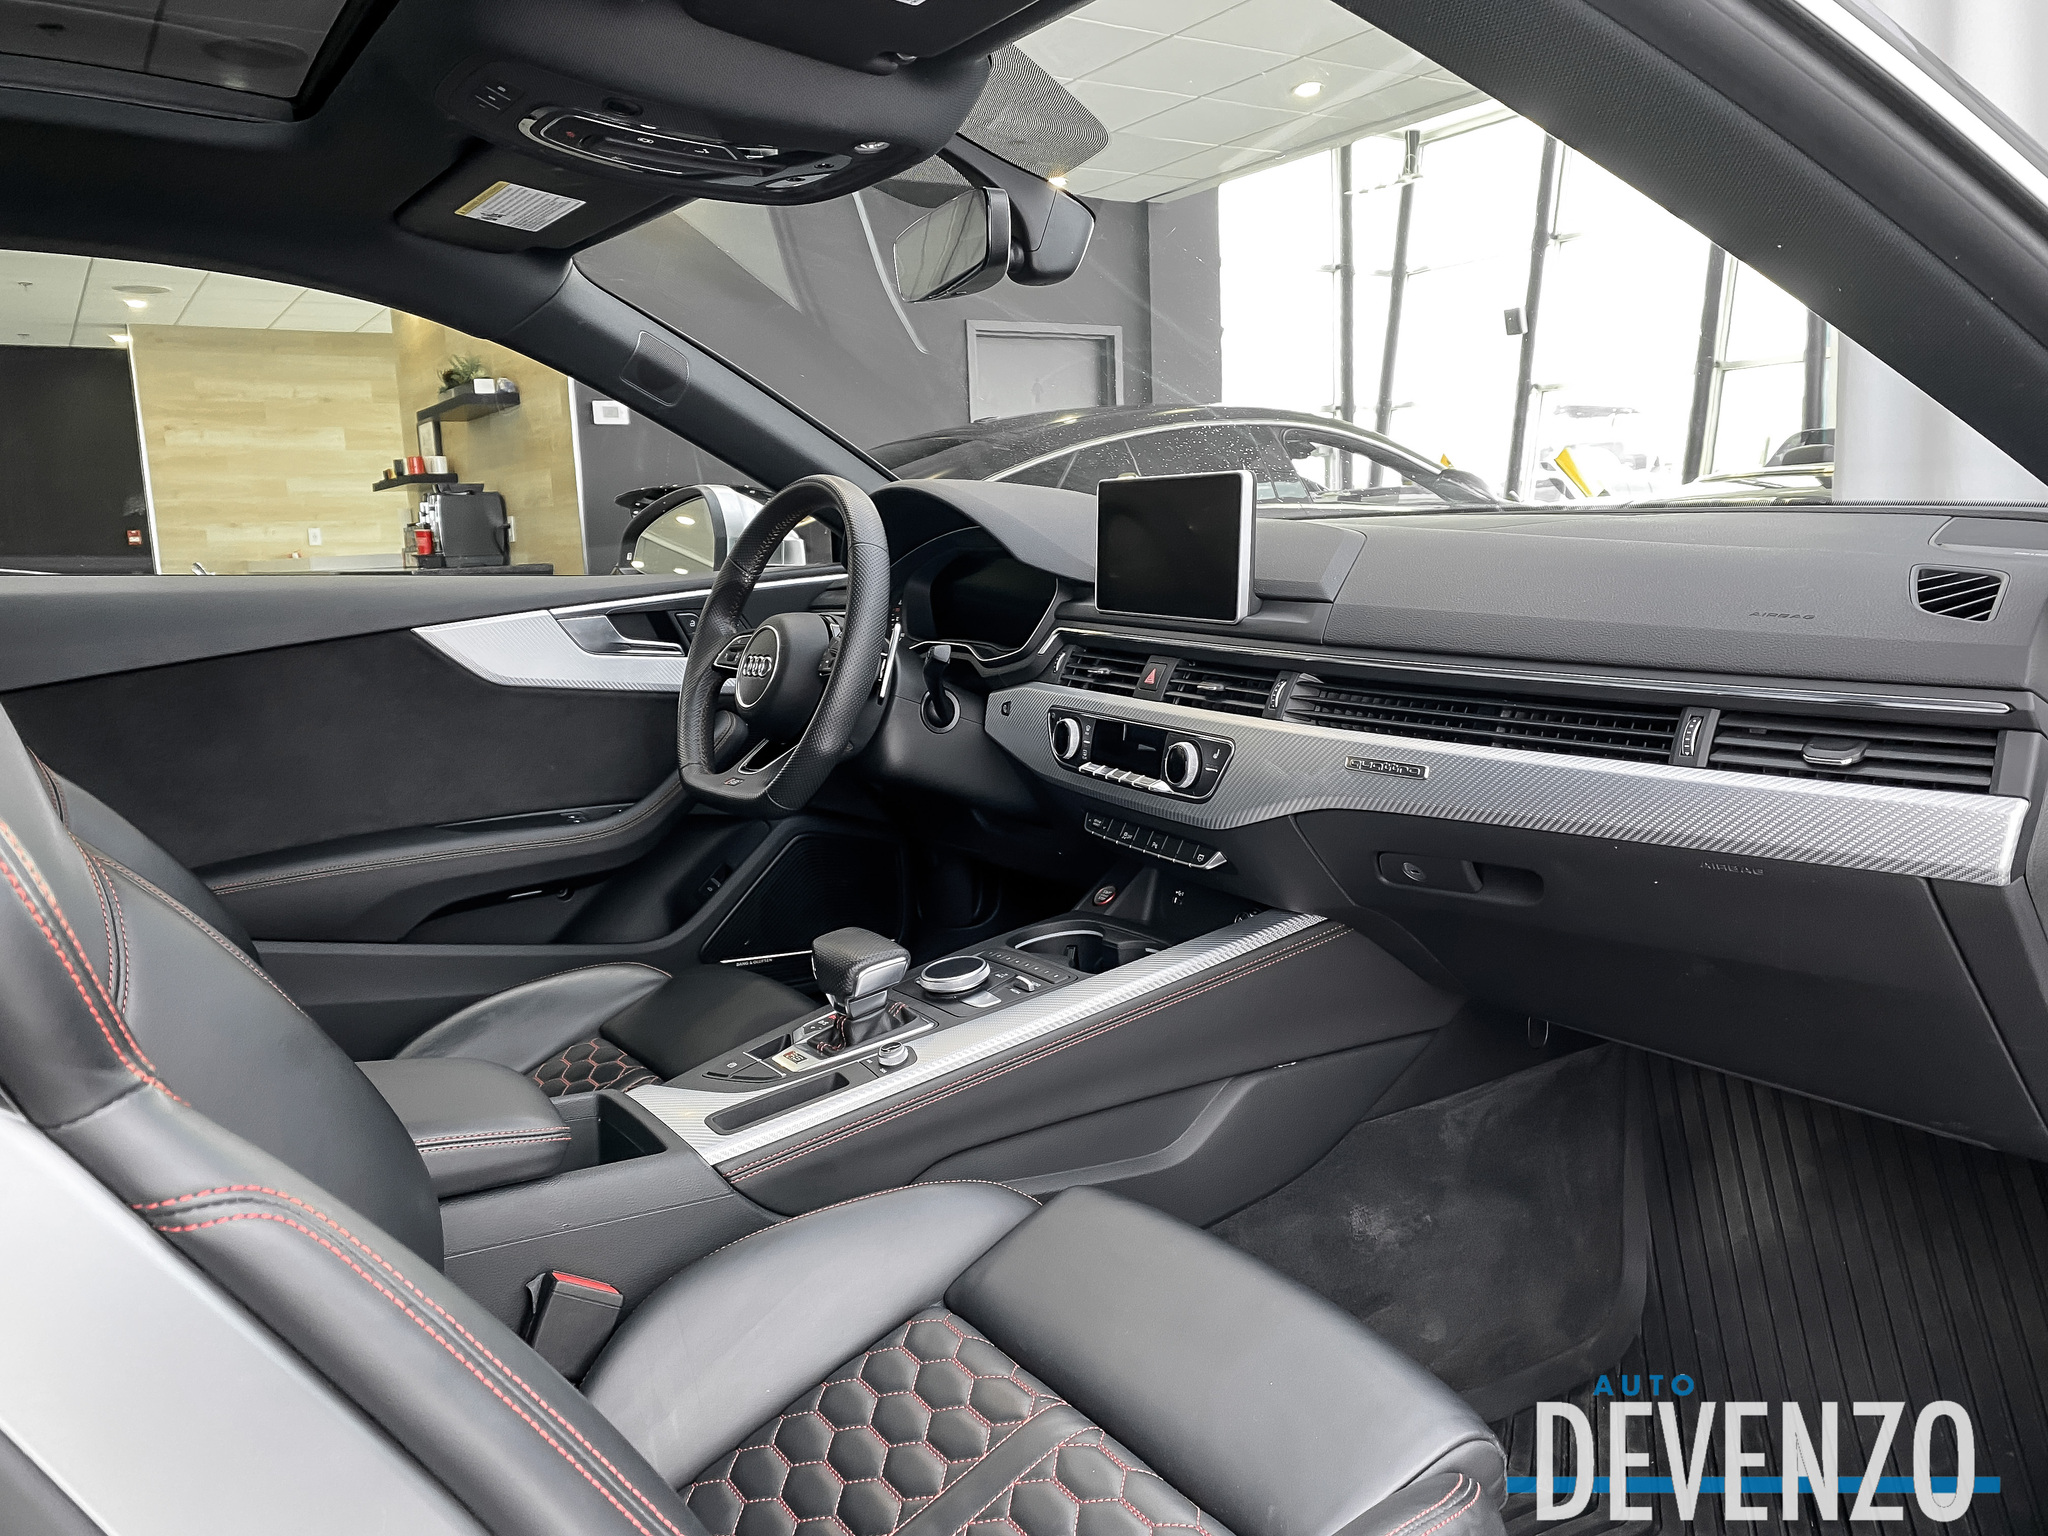 2018 Audi RS 5 Coupe 2.9 TFSI QUATTRO 444HP PREMIUM / BANG & OLUFSEN complet